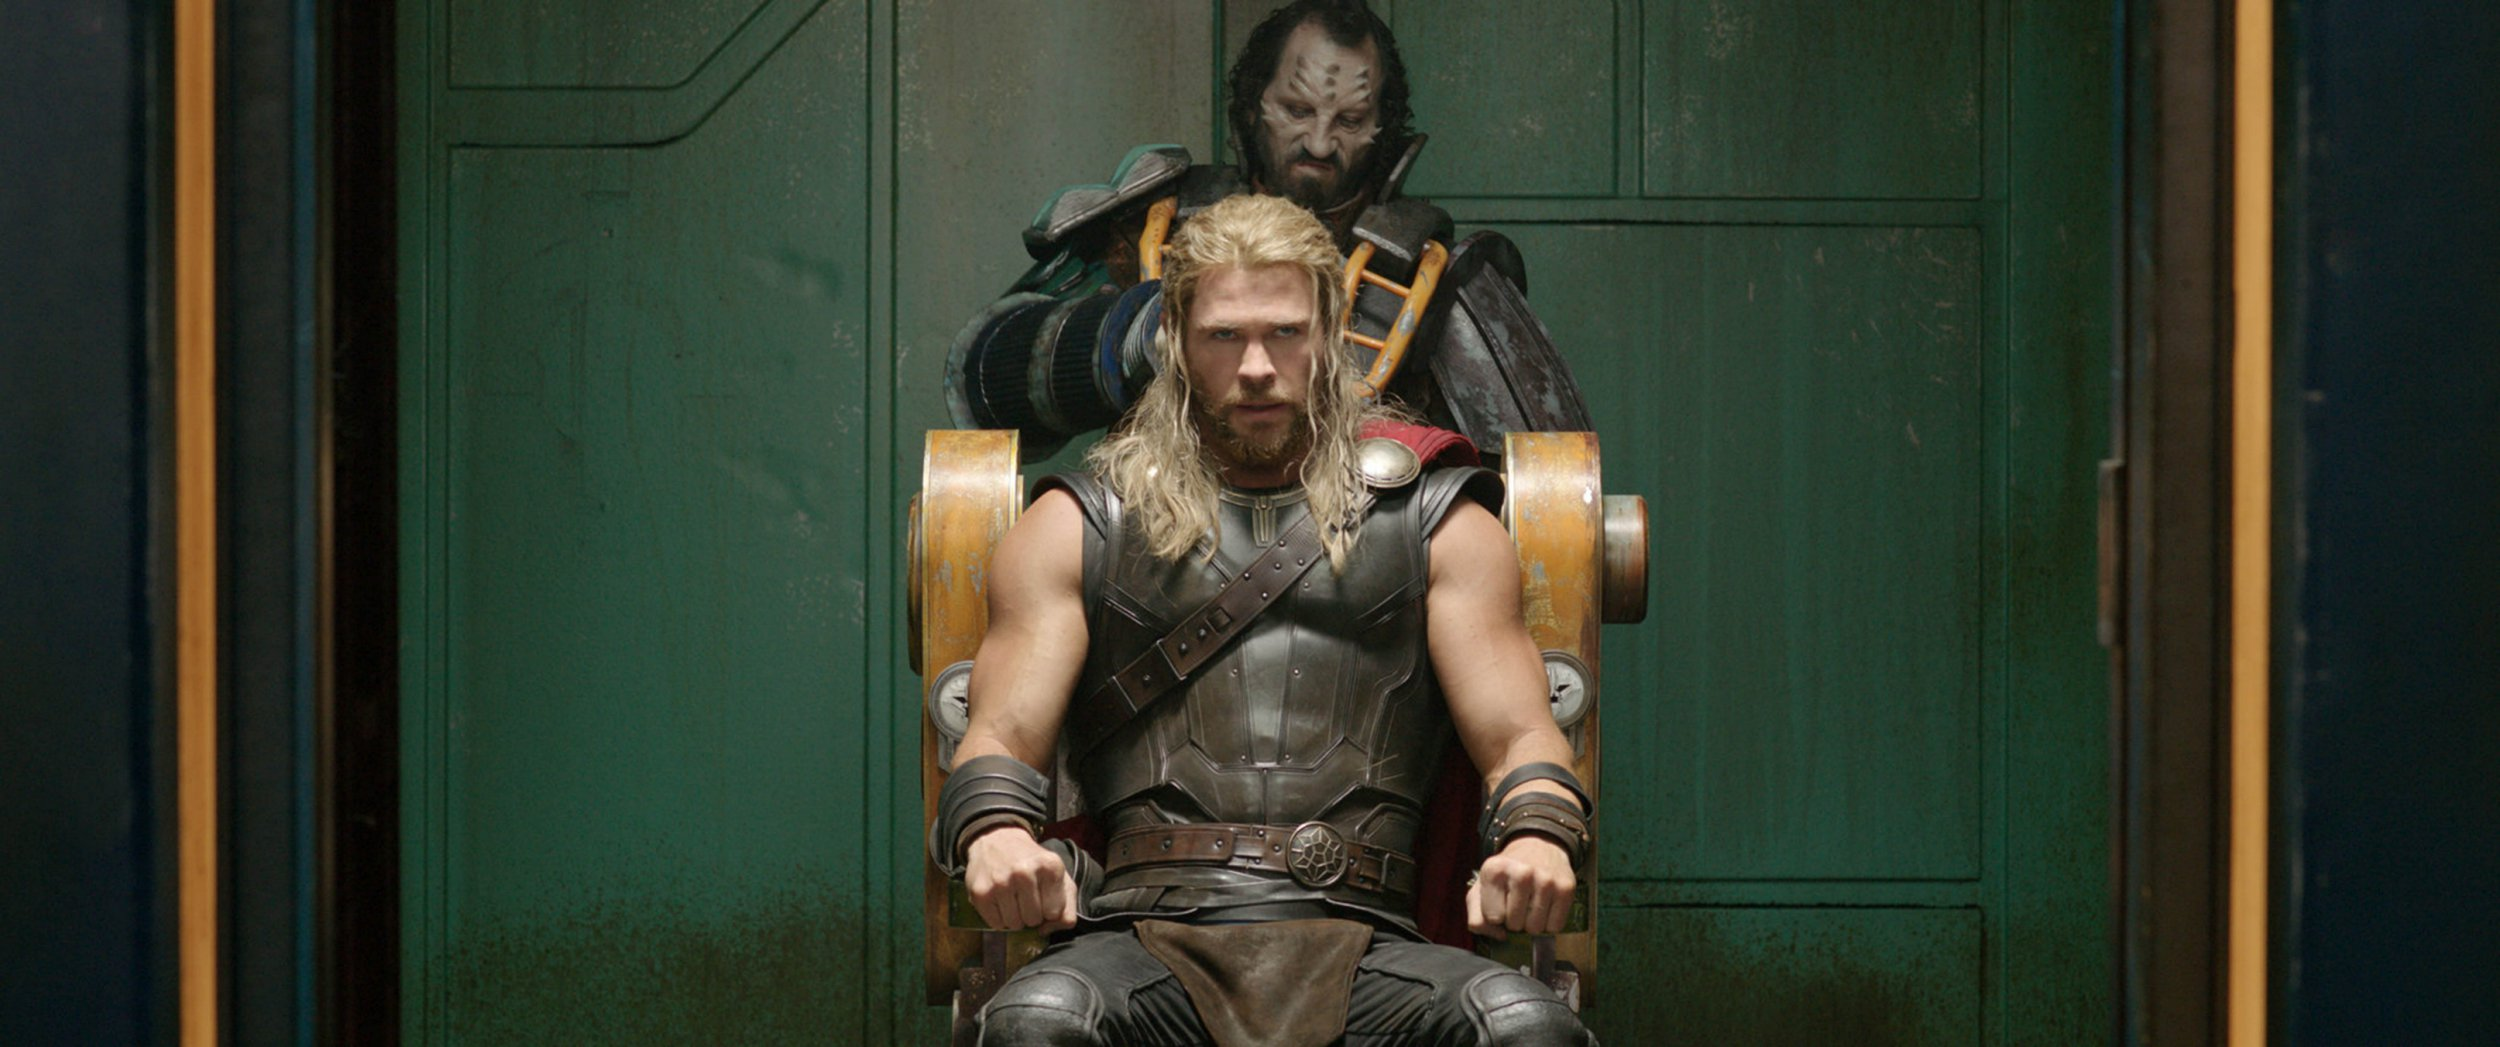 Thor: Ragnarok review: God of thunder lightens up in Marvel's funniest film yet